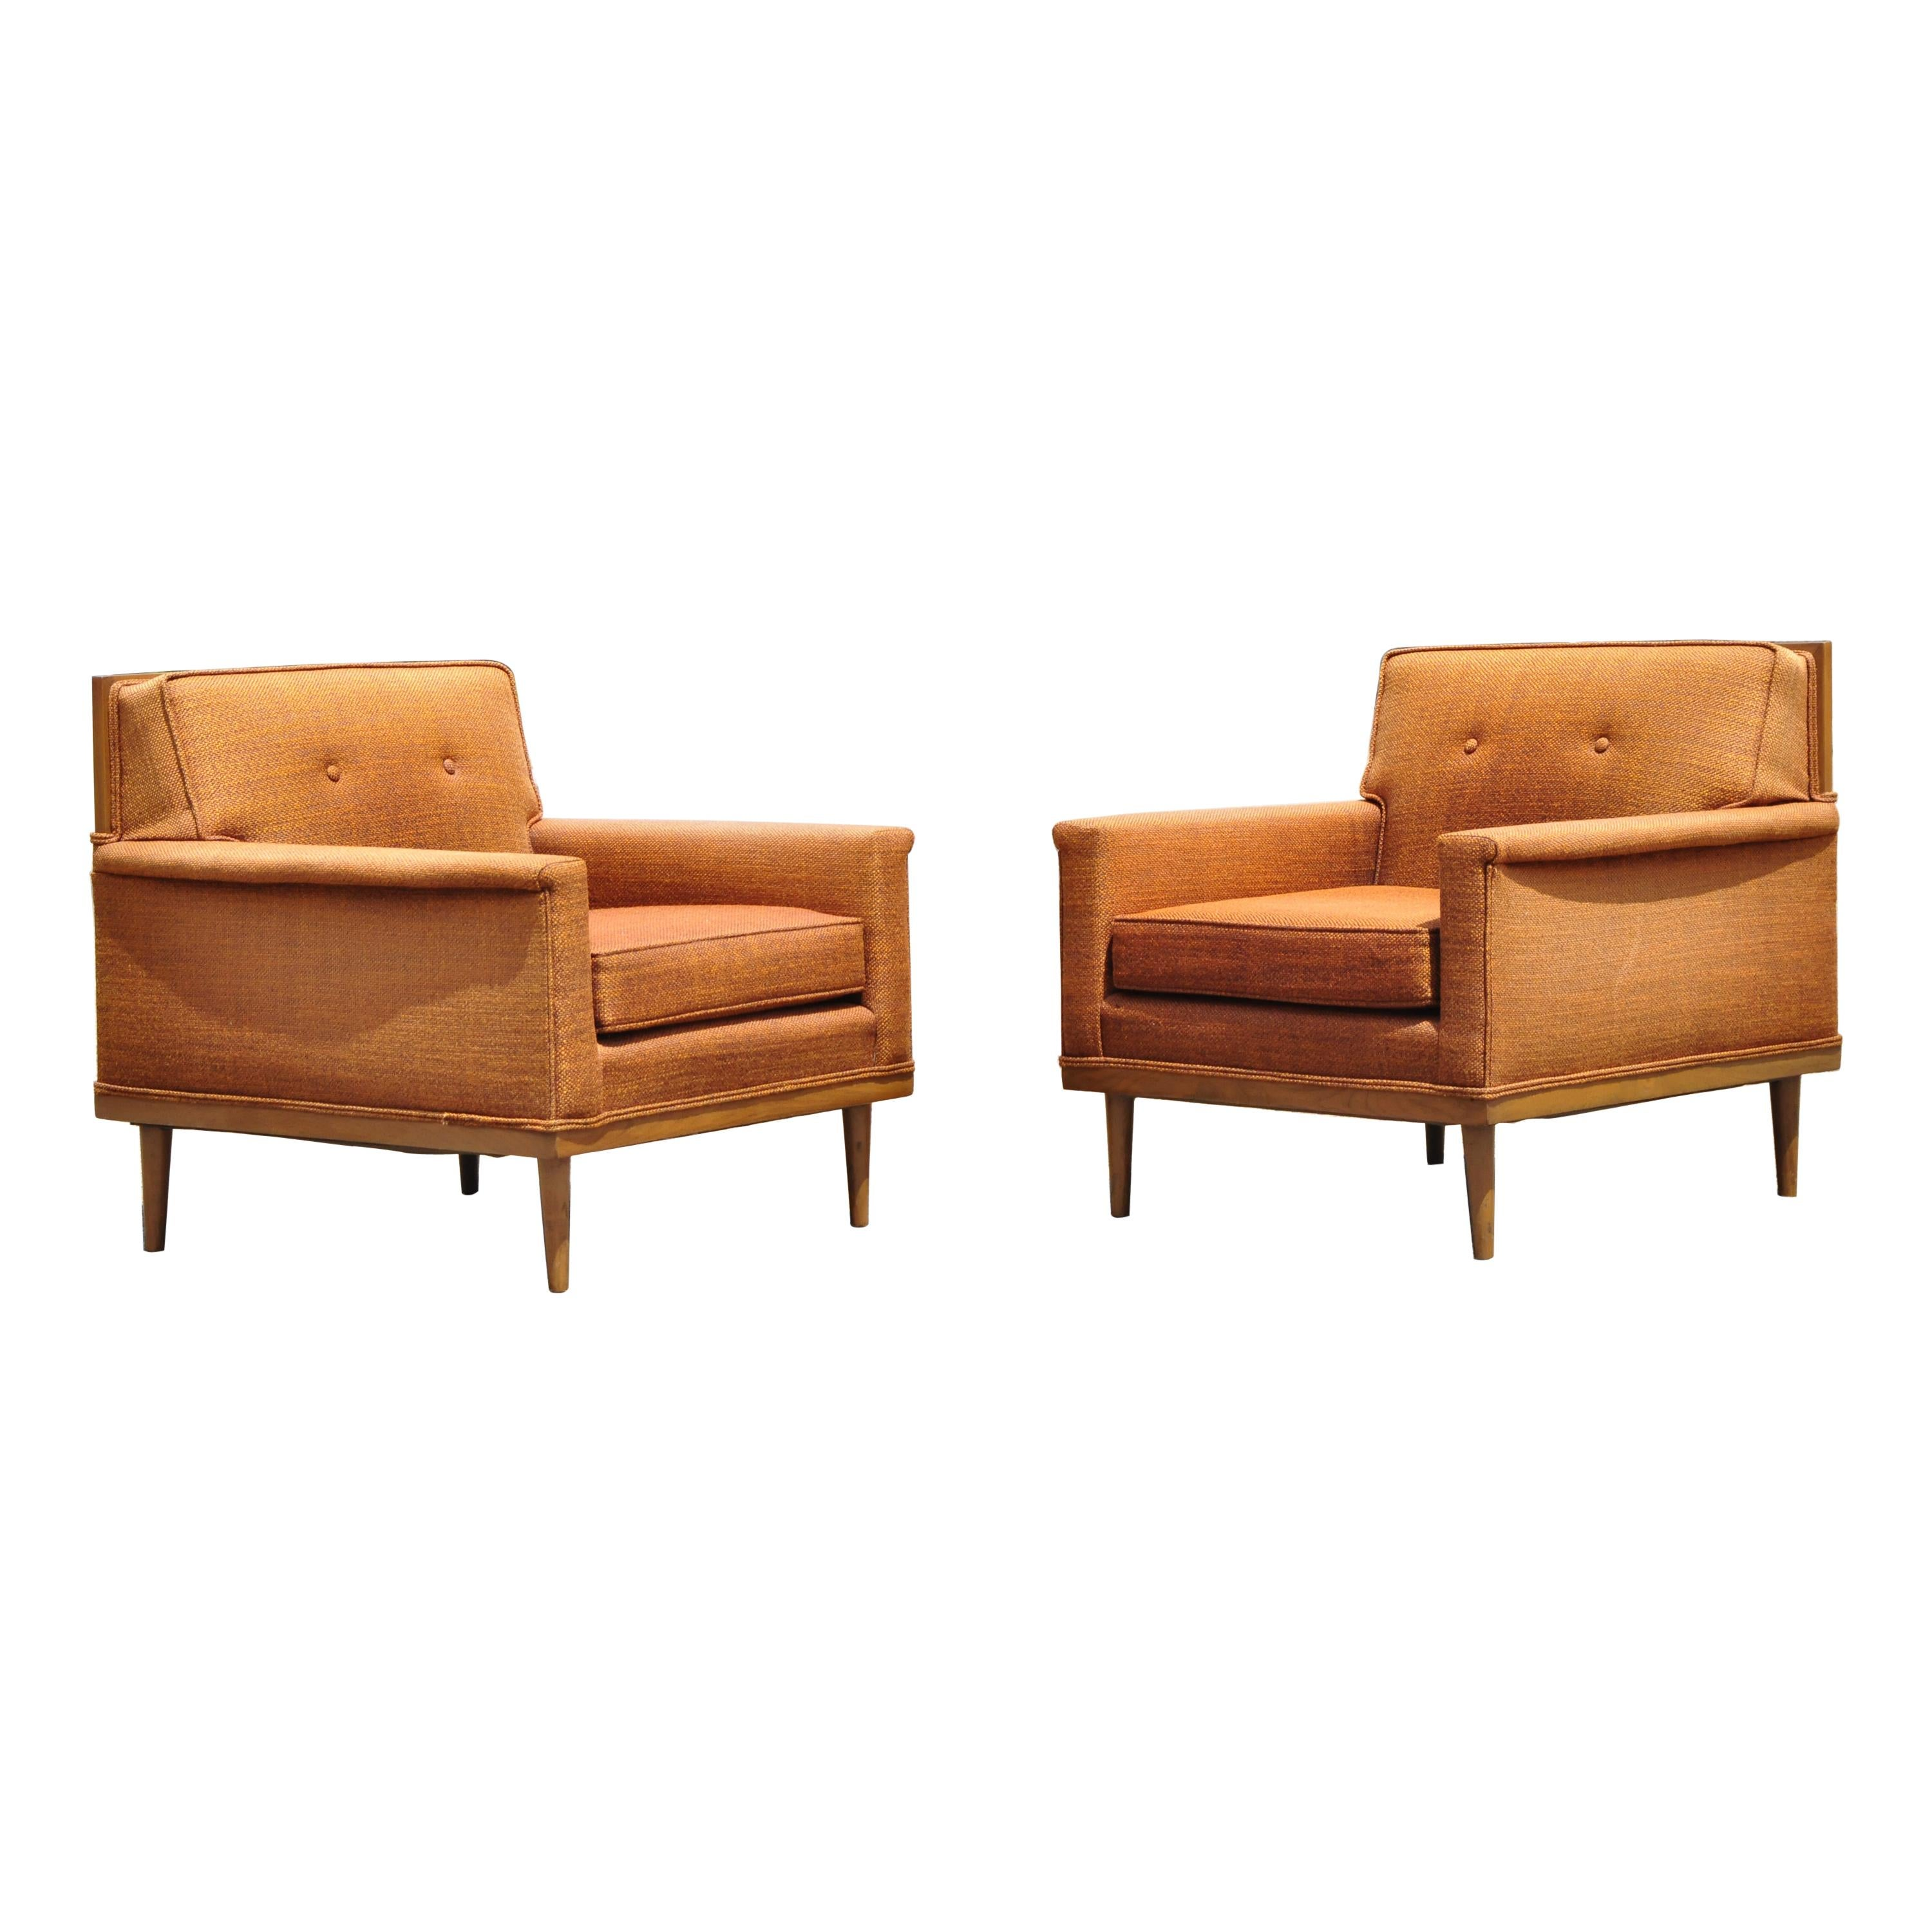 Pair of Mid-Century Modern Paul McCobb Style Club Lounge Chairs by J.B. Sciver